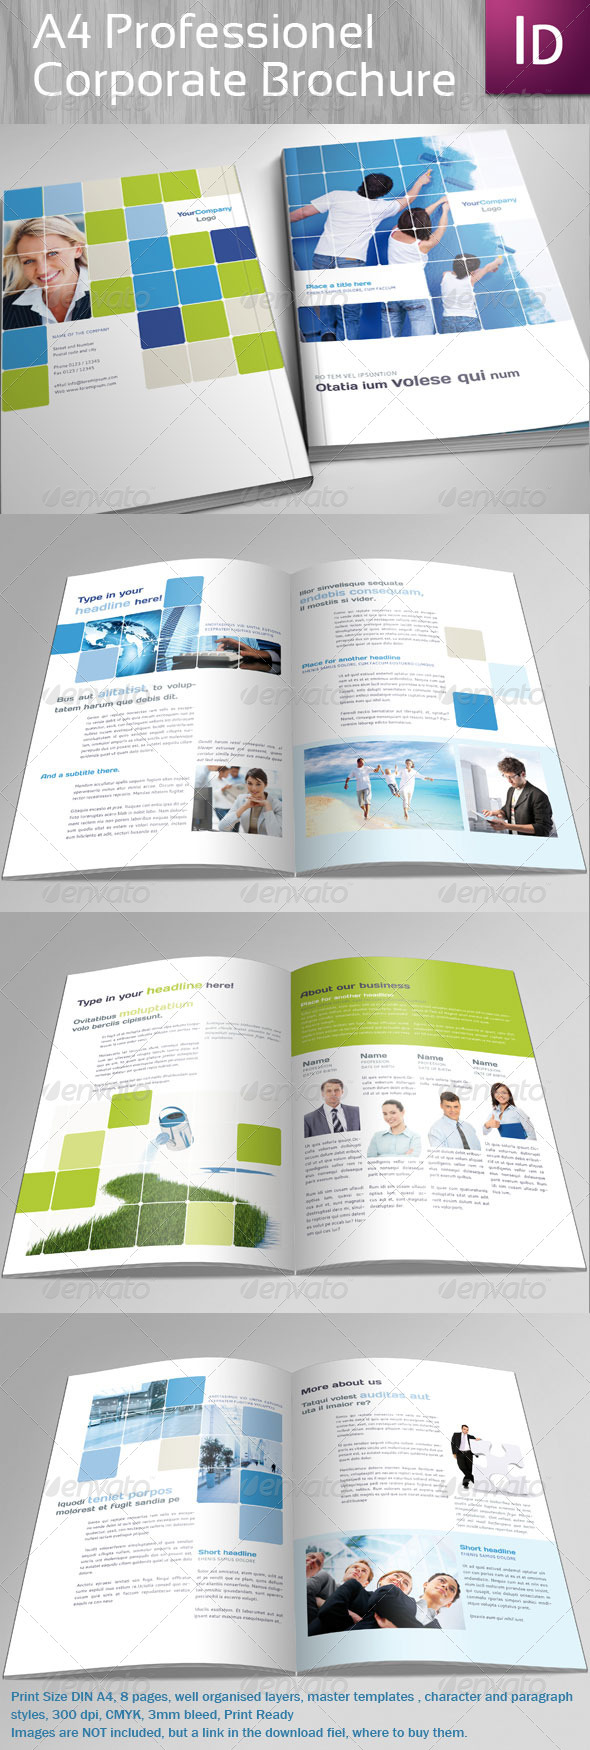 A4 Professional Coporate Brochure - Corporate Brochures